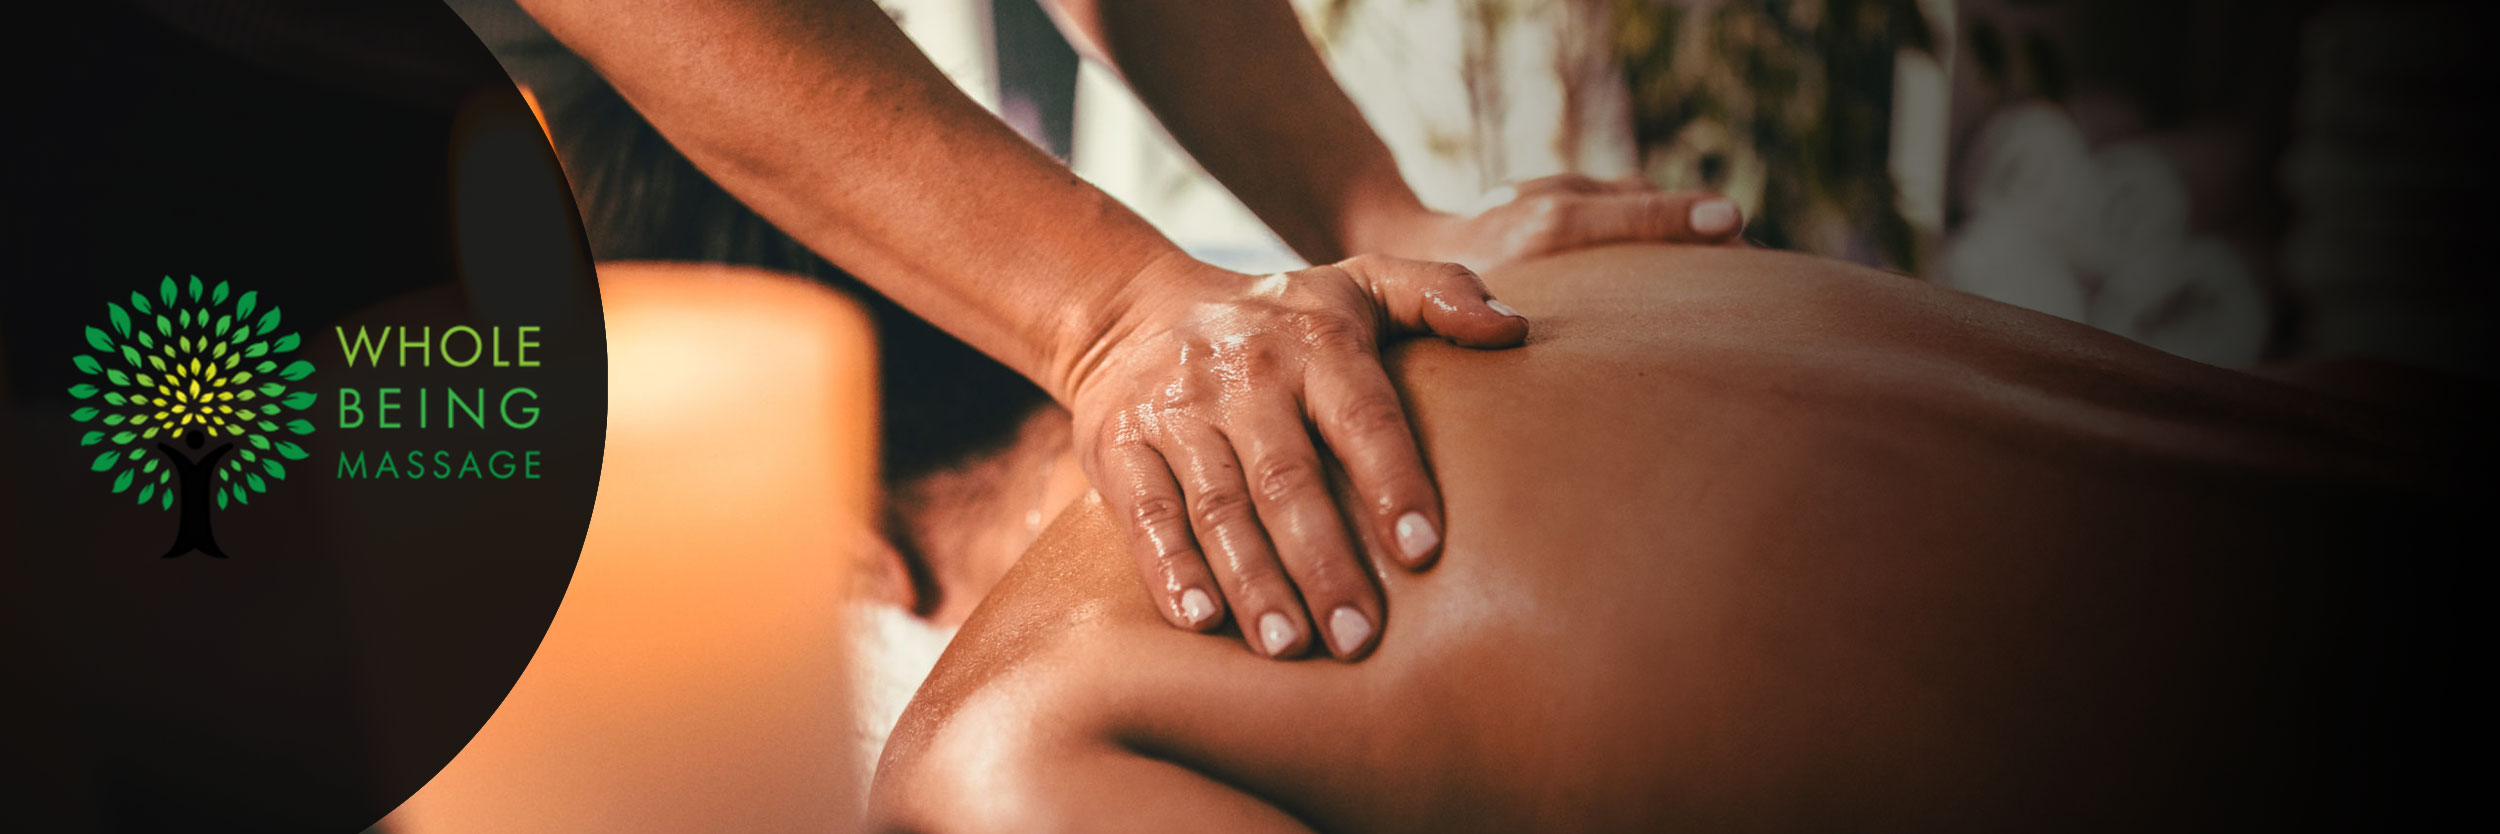 Banner for Whole Being Massage